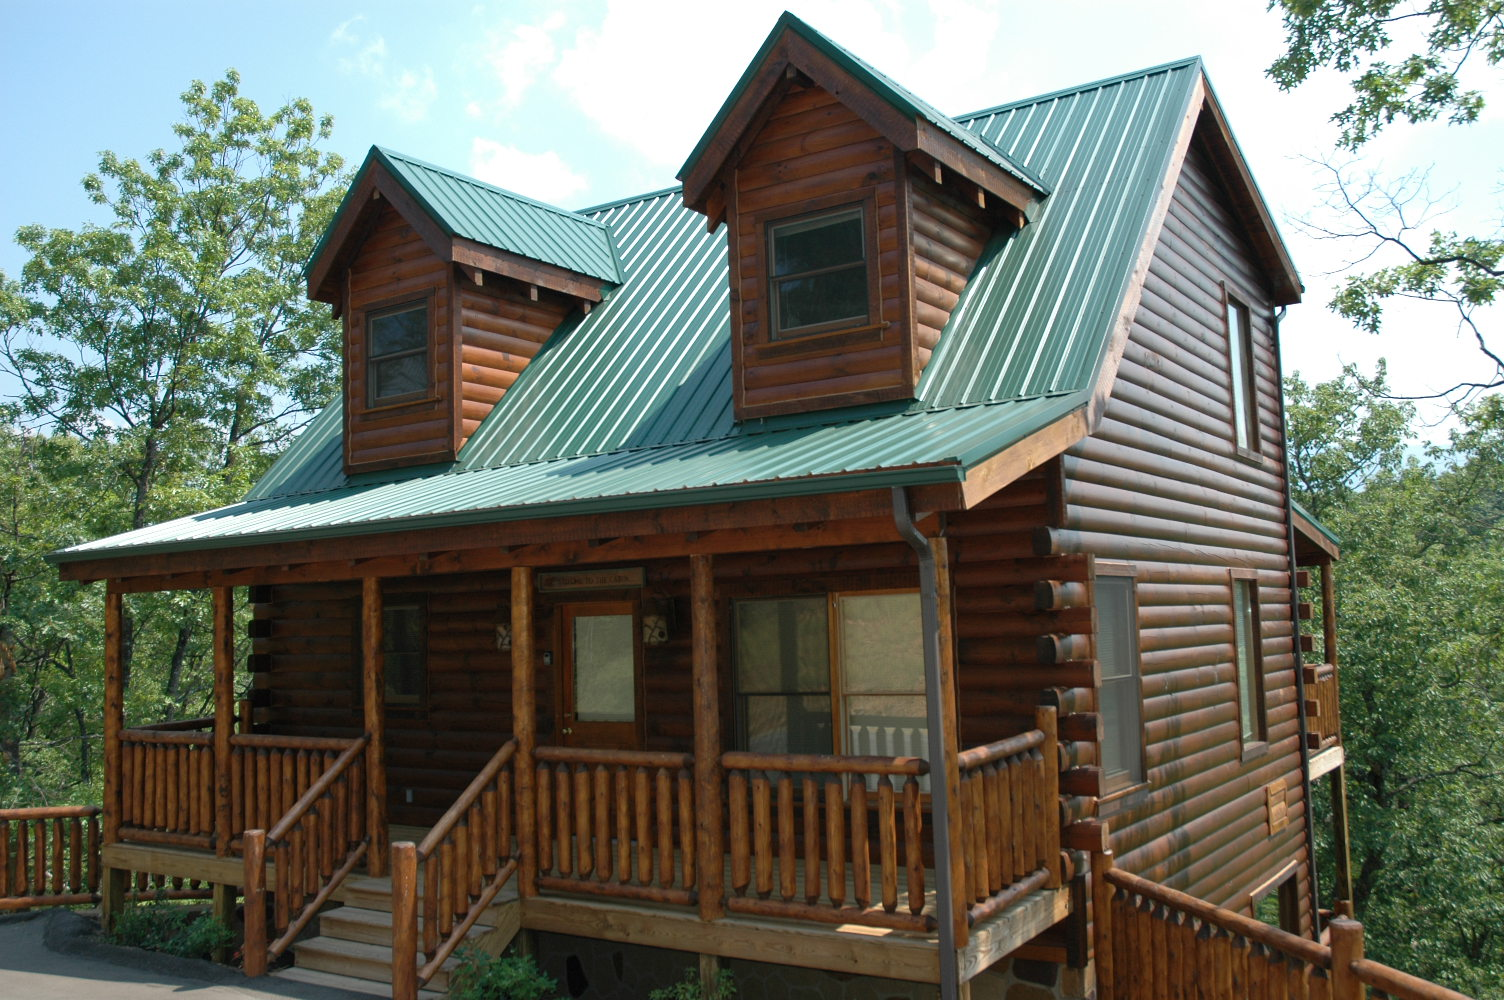 Winter cabin rental specials archives pigeon forge for Gatlinburg cabin rentals specials